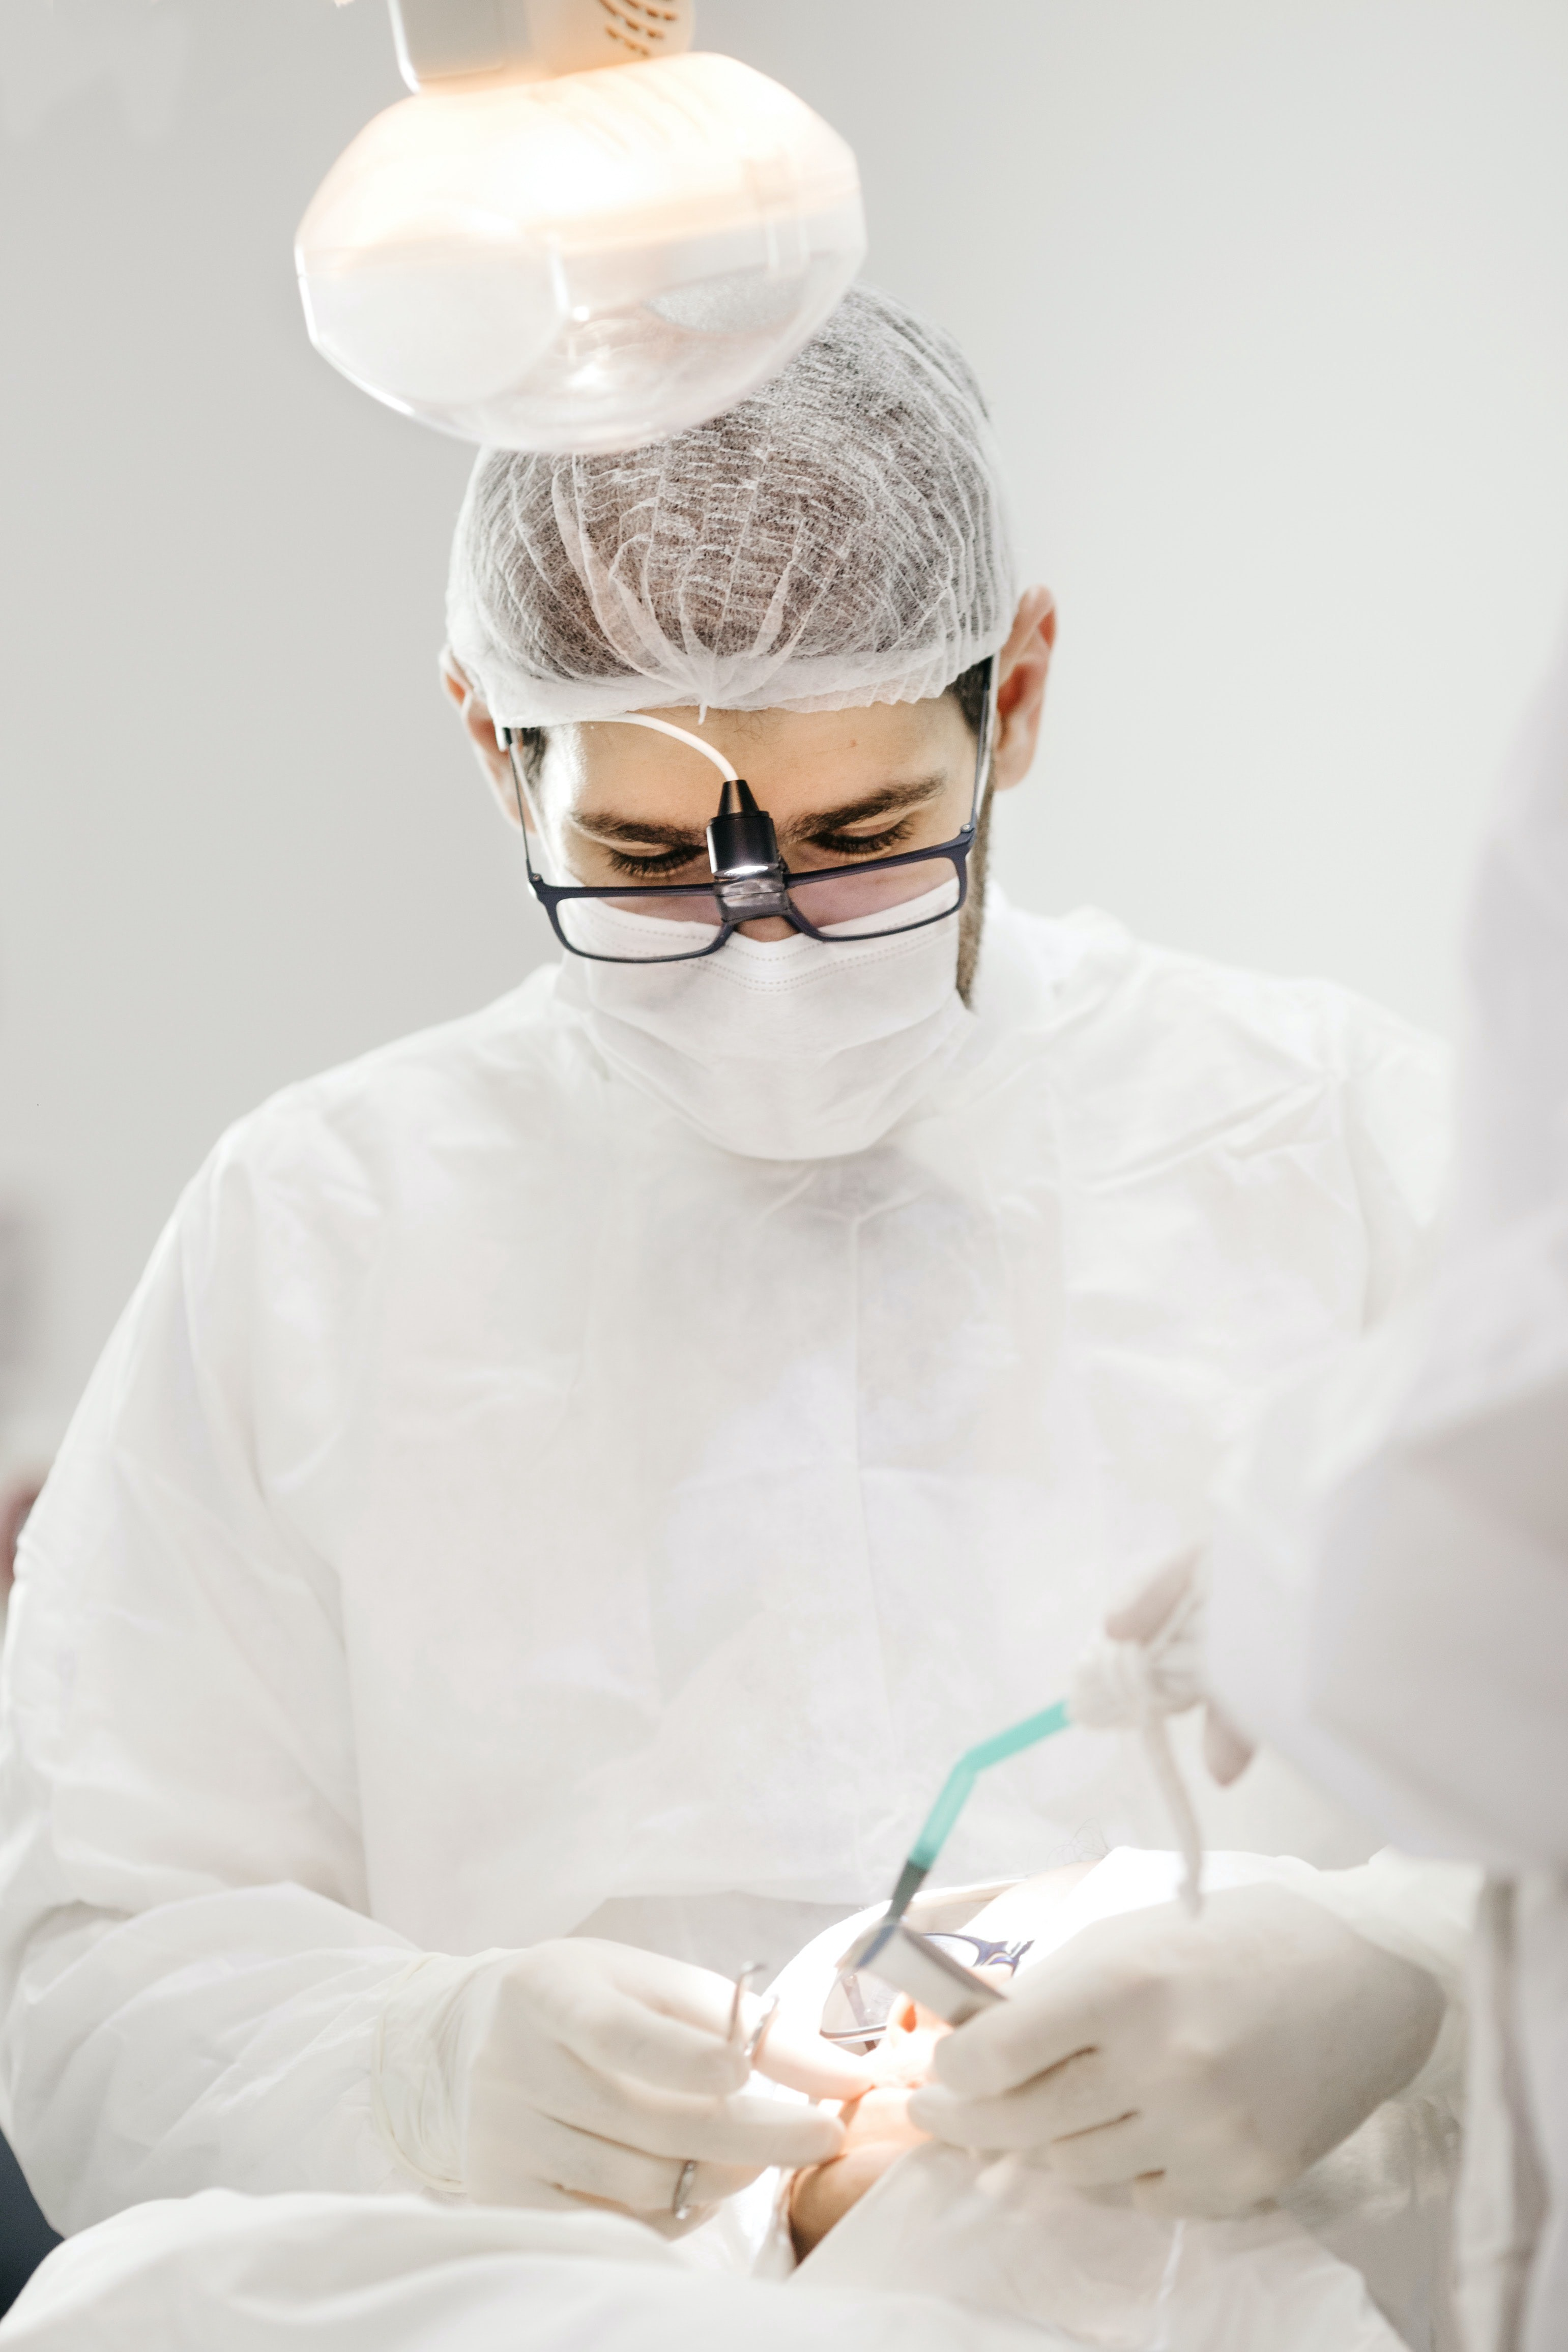 surgeon performing an operation in white gown and mask